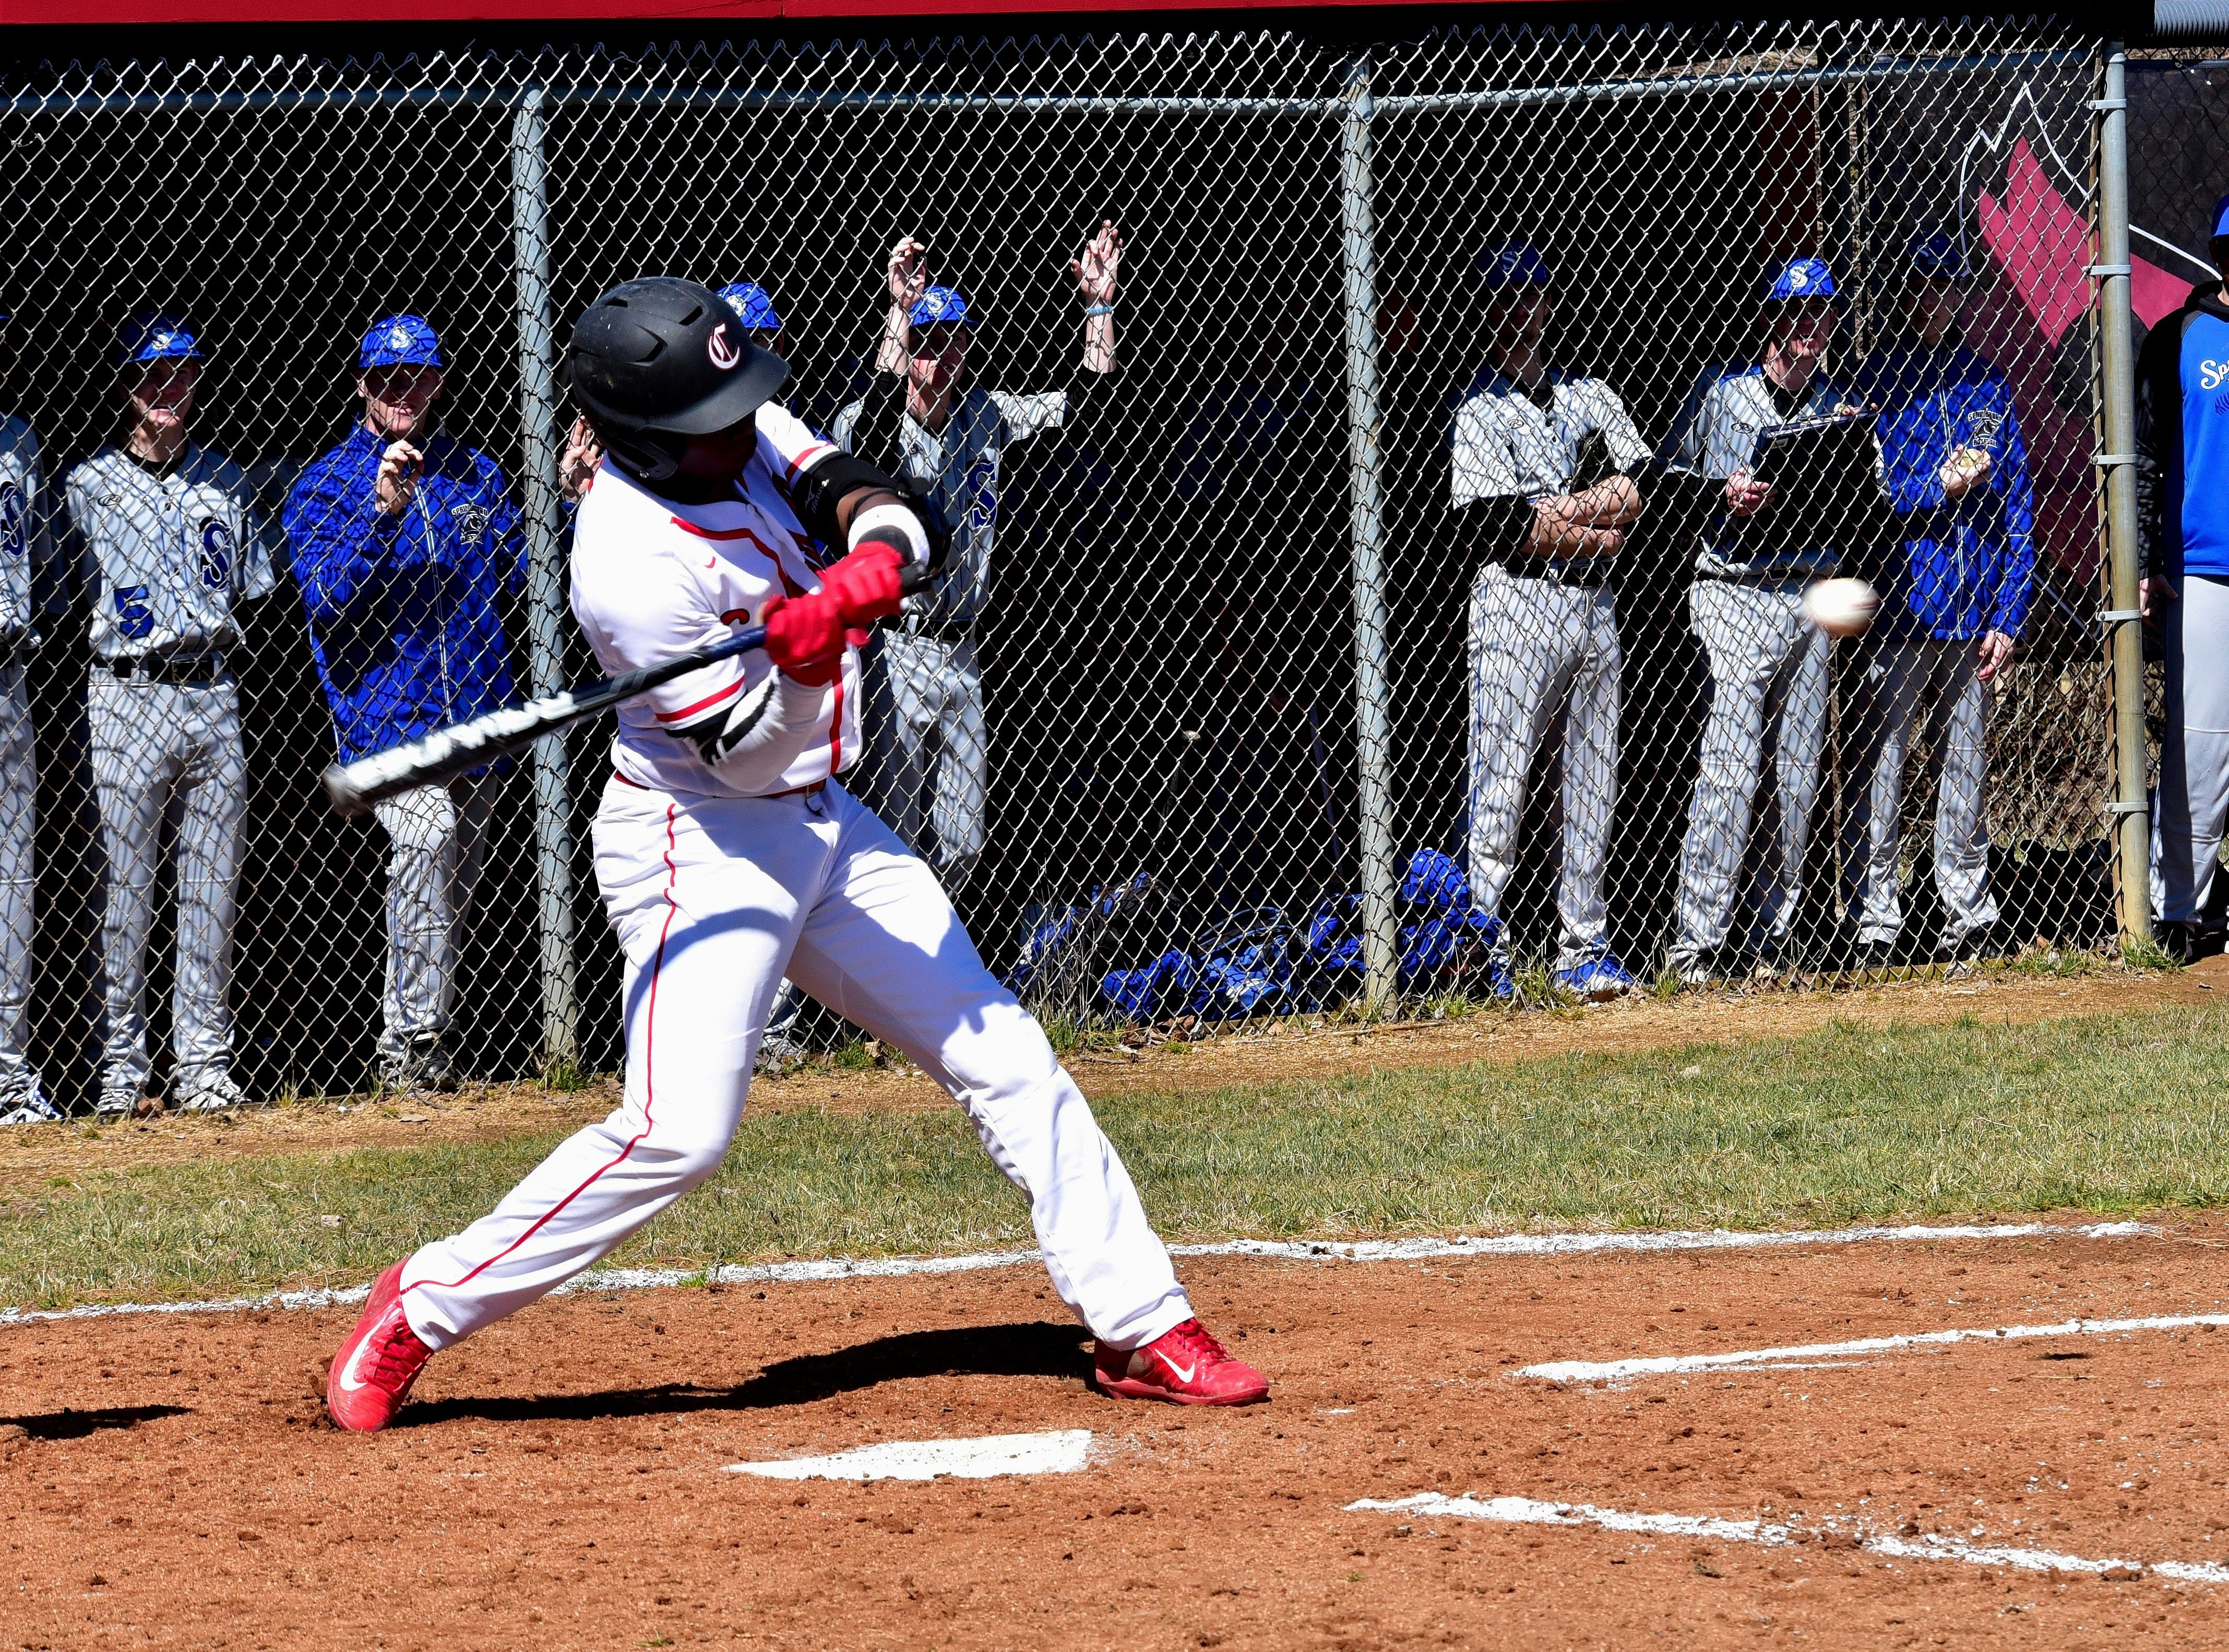 Colerain's DeAnte Smith-Moore eyes his first RBI of the season on opening day at Colerain High School, March 23, 2019.